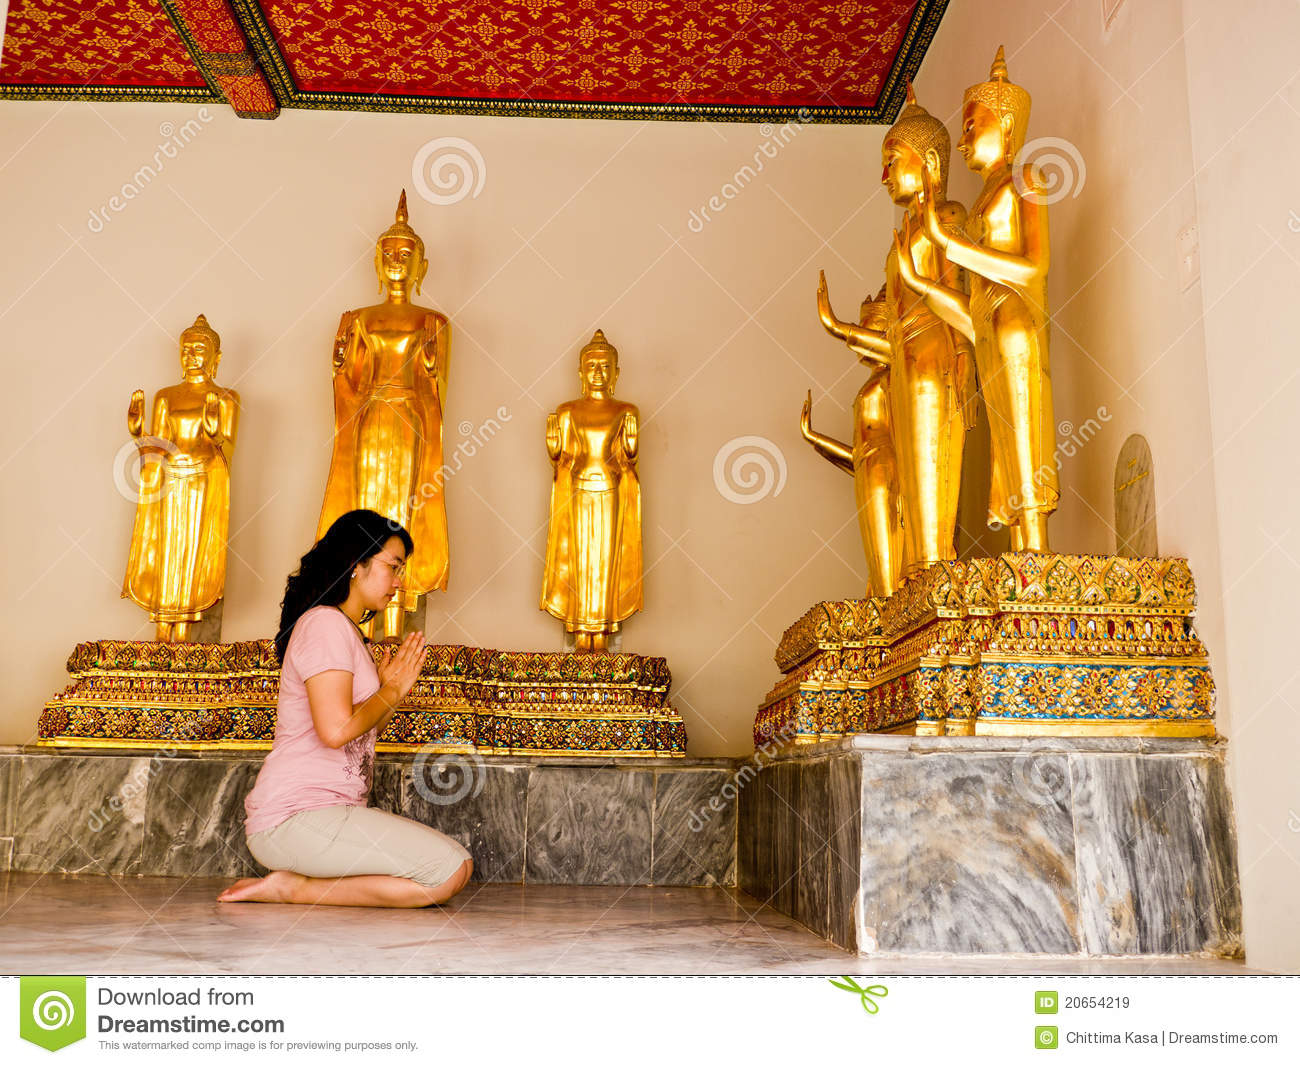 buddhist single women in huntertown Buddhist singles 100% free buddhist singles with forums, blogs, chat, im, email, singles events all features 100% free.